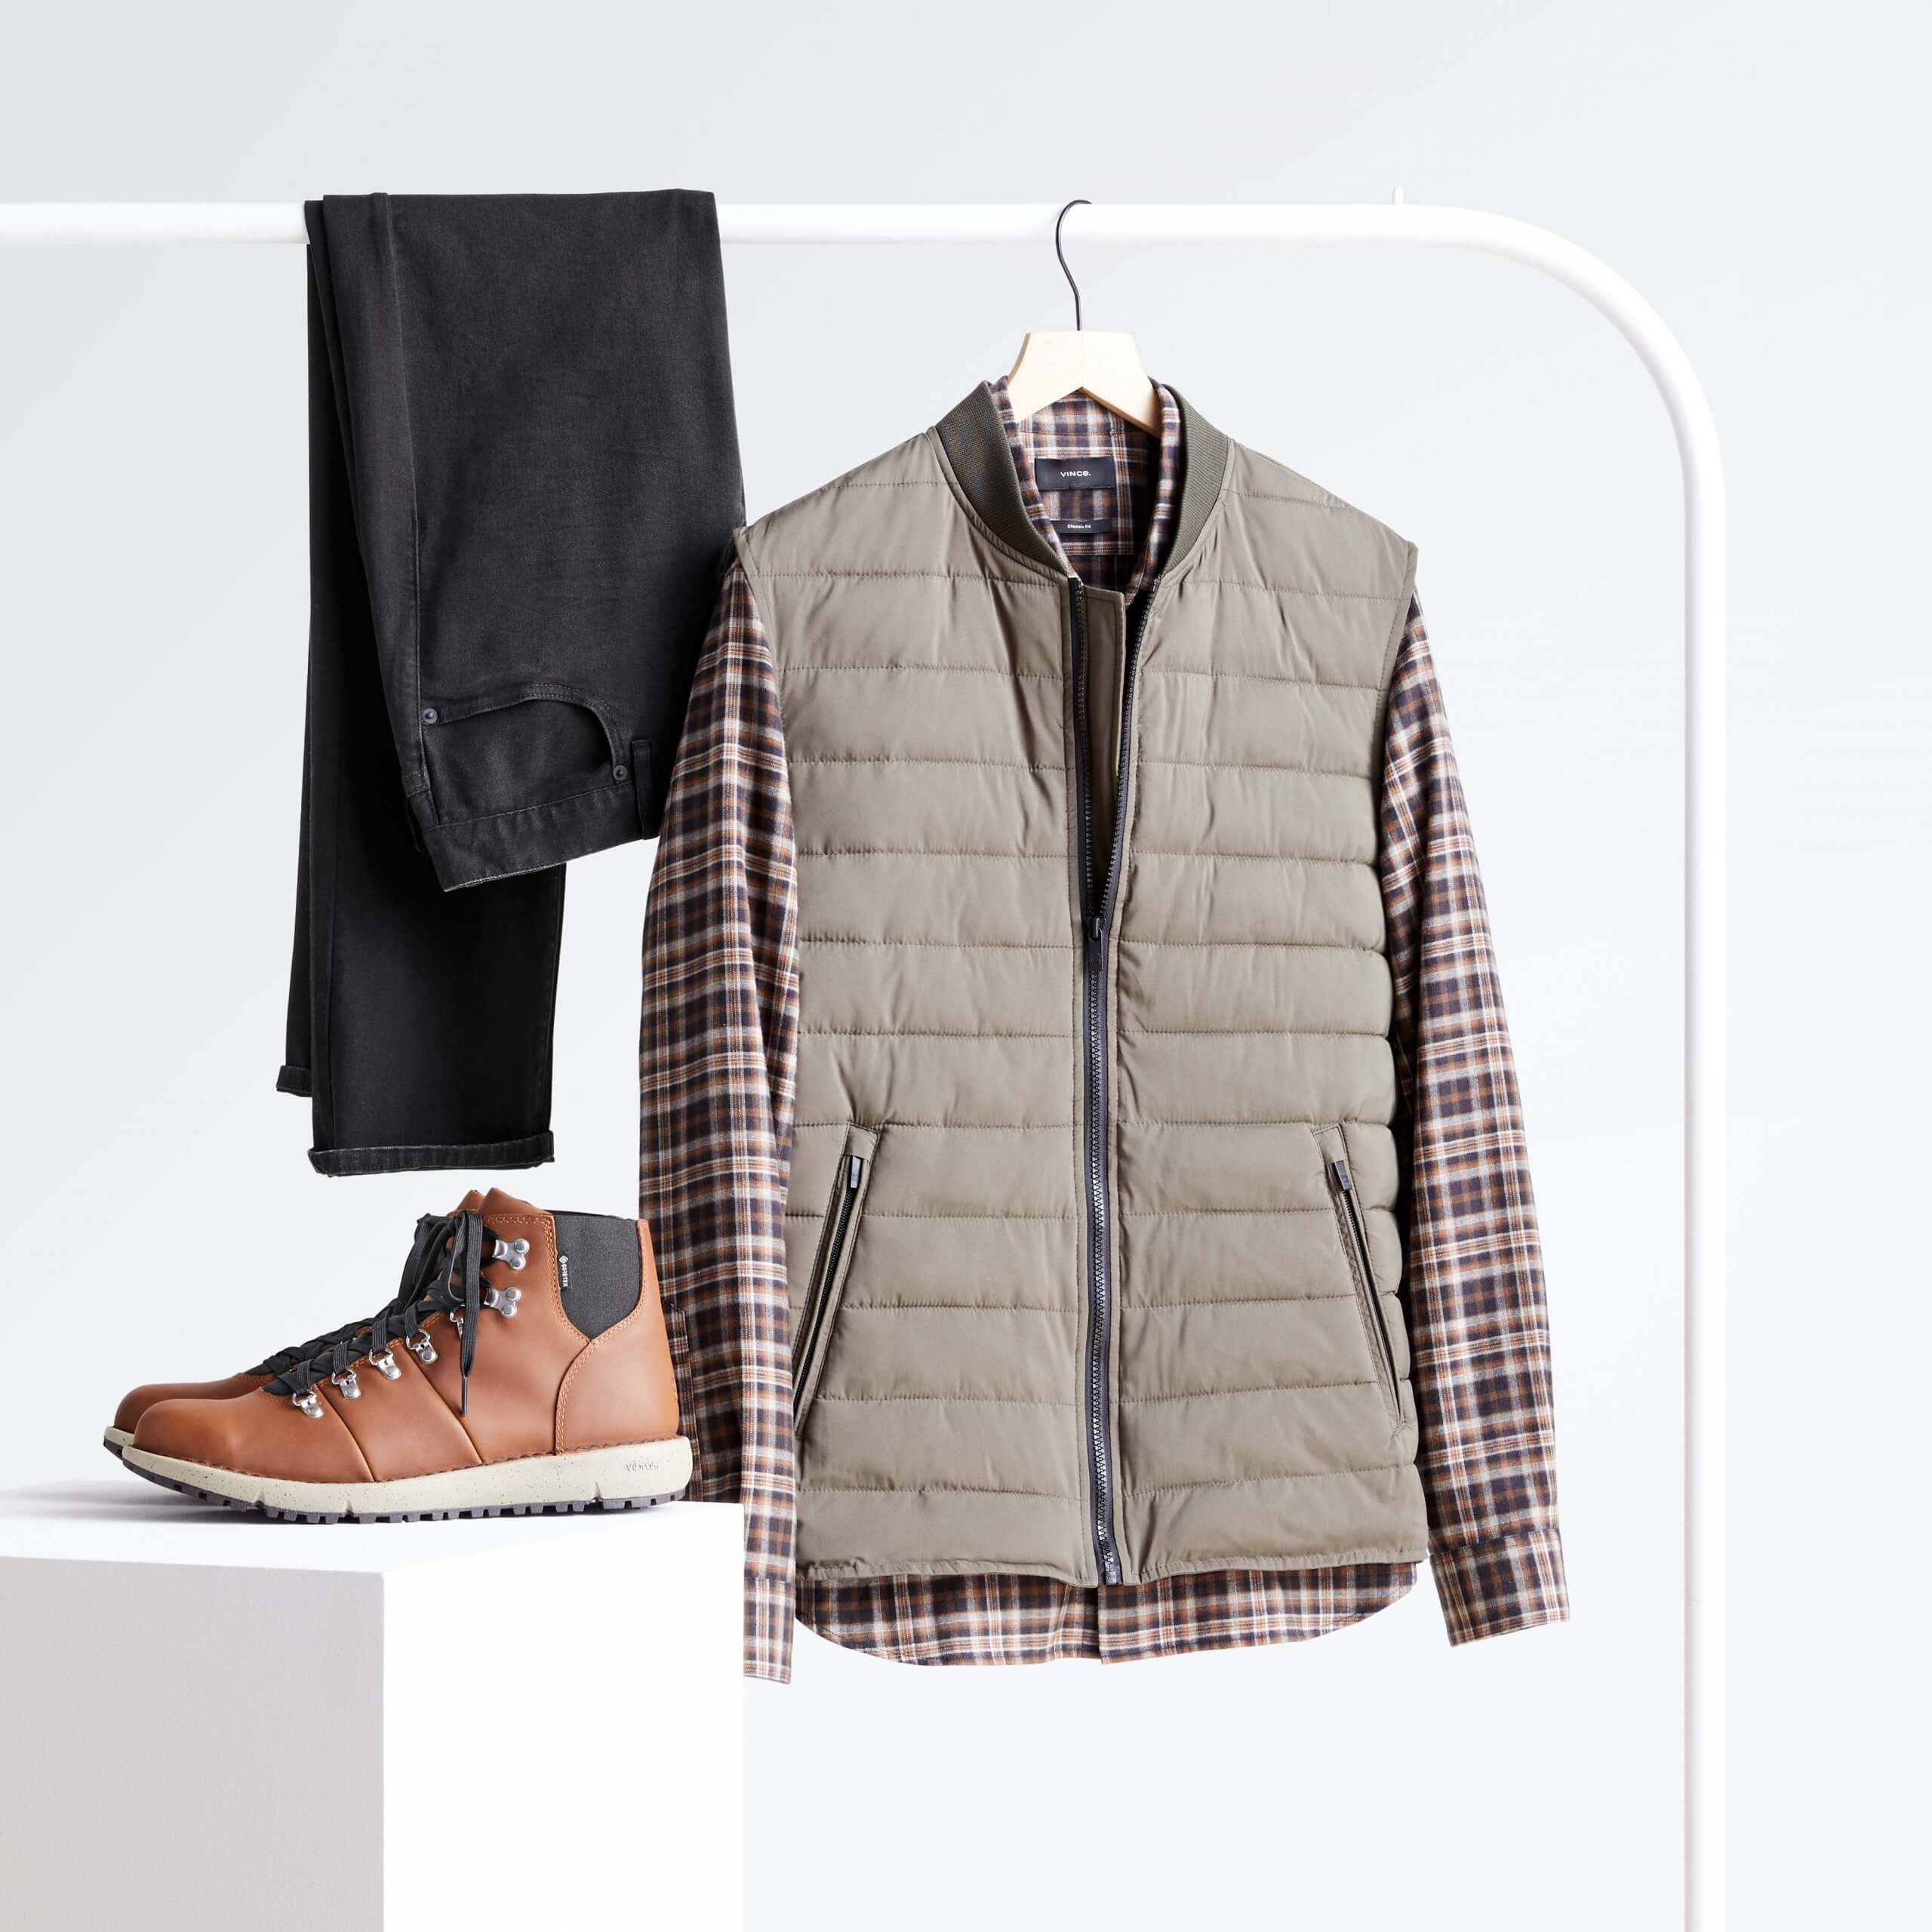 Stitch Fix Men's grey vest over plaid shirt and black jeans hanging on white rack, next to brown hiker boots on white block.